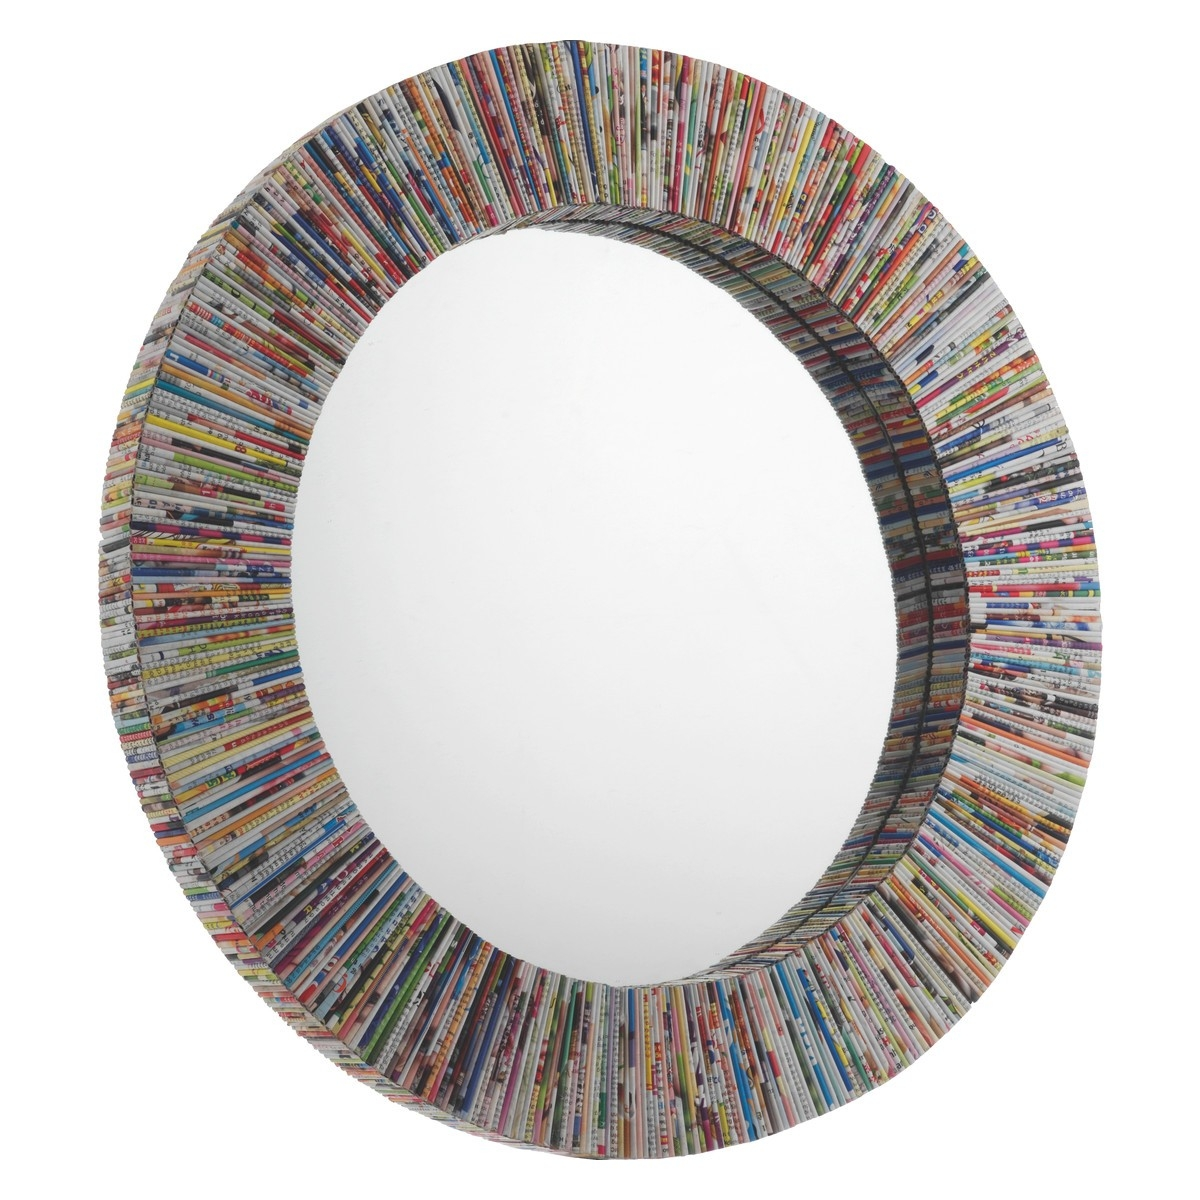 Mirrors Full Length Large Round Wall Mirrors Habitat Regarding Round Mirrors Large (Image 14 of 15)